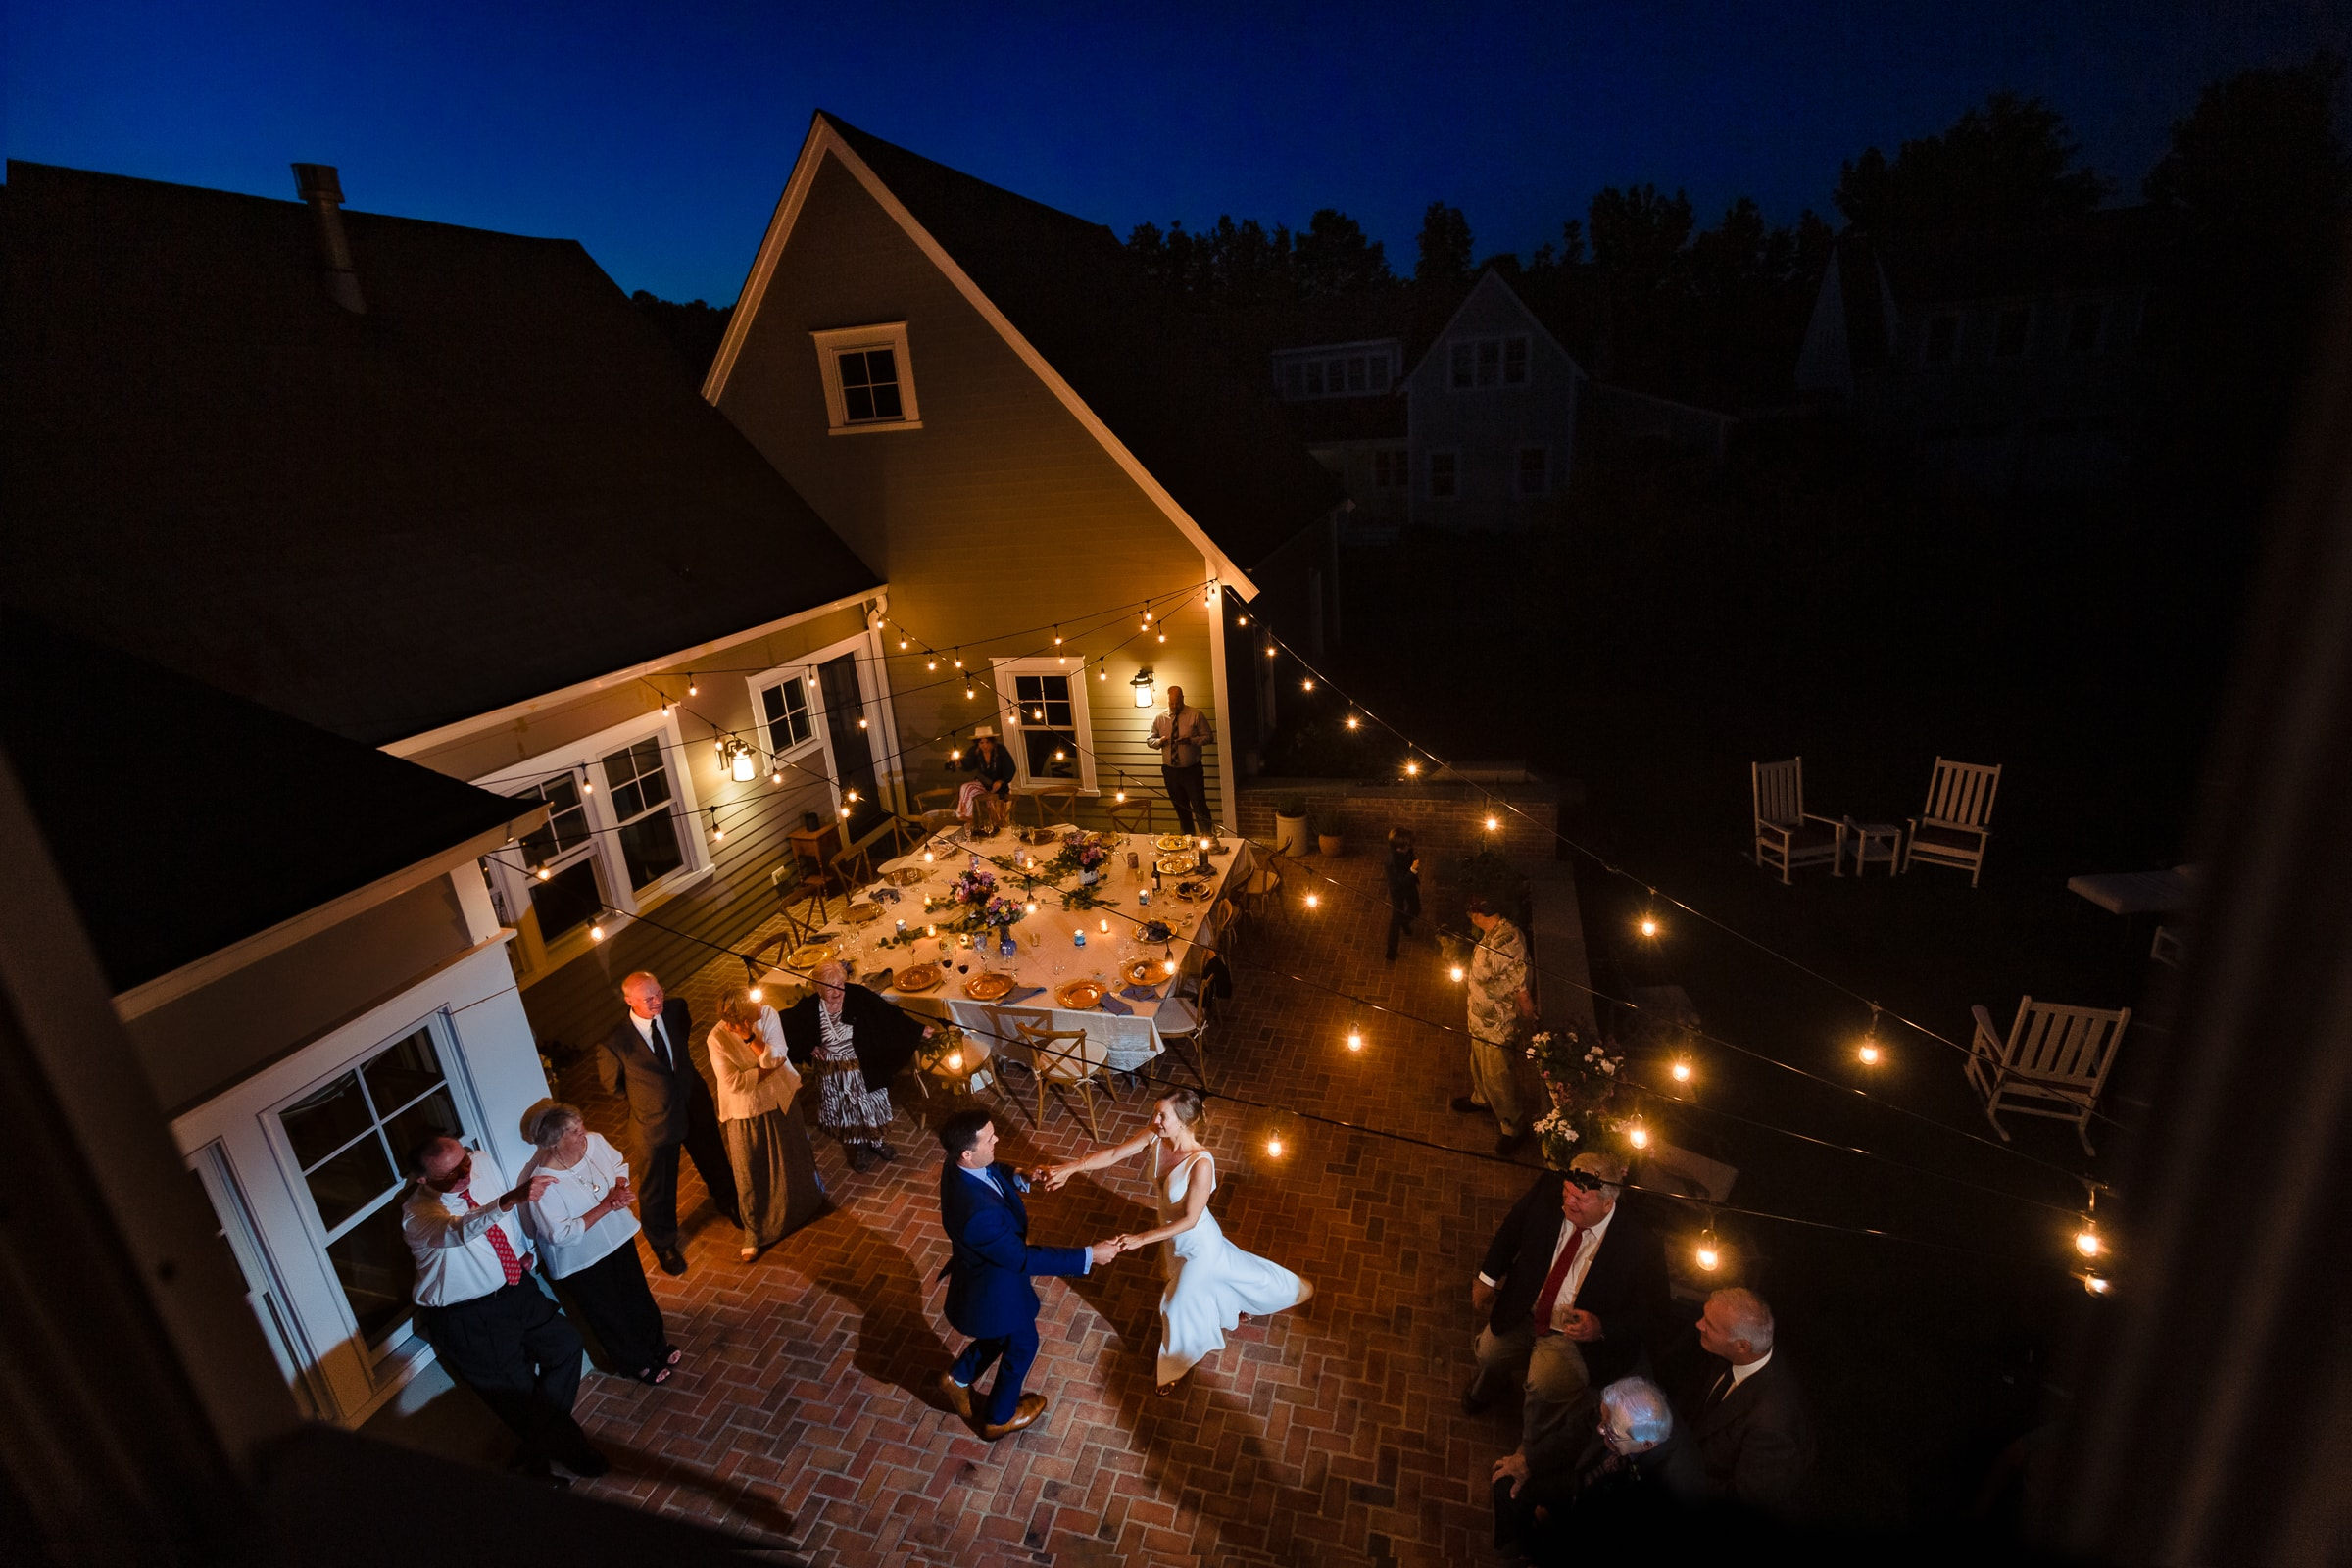 Gorgeous action shot of bride and groom dancing in an outdoor backyard wedding for their Chesapeake Bay Wedding.